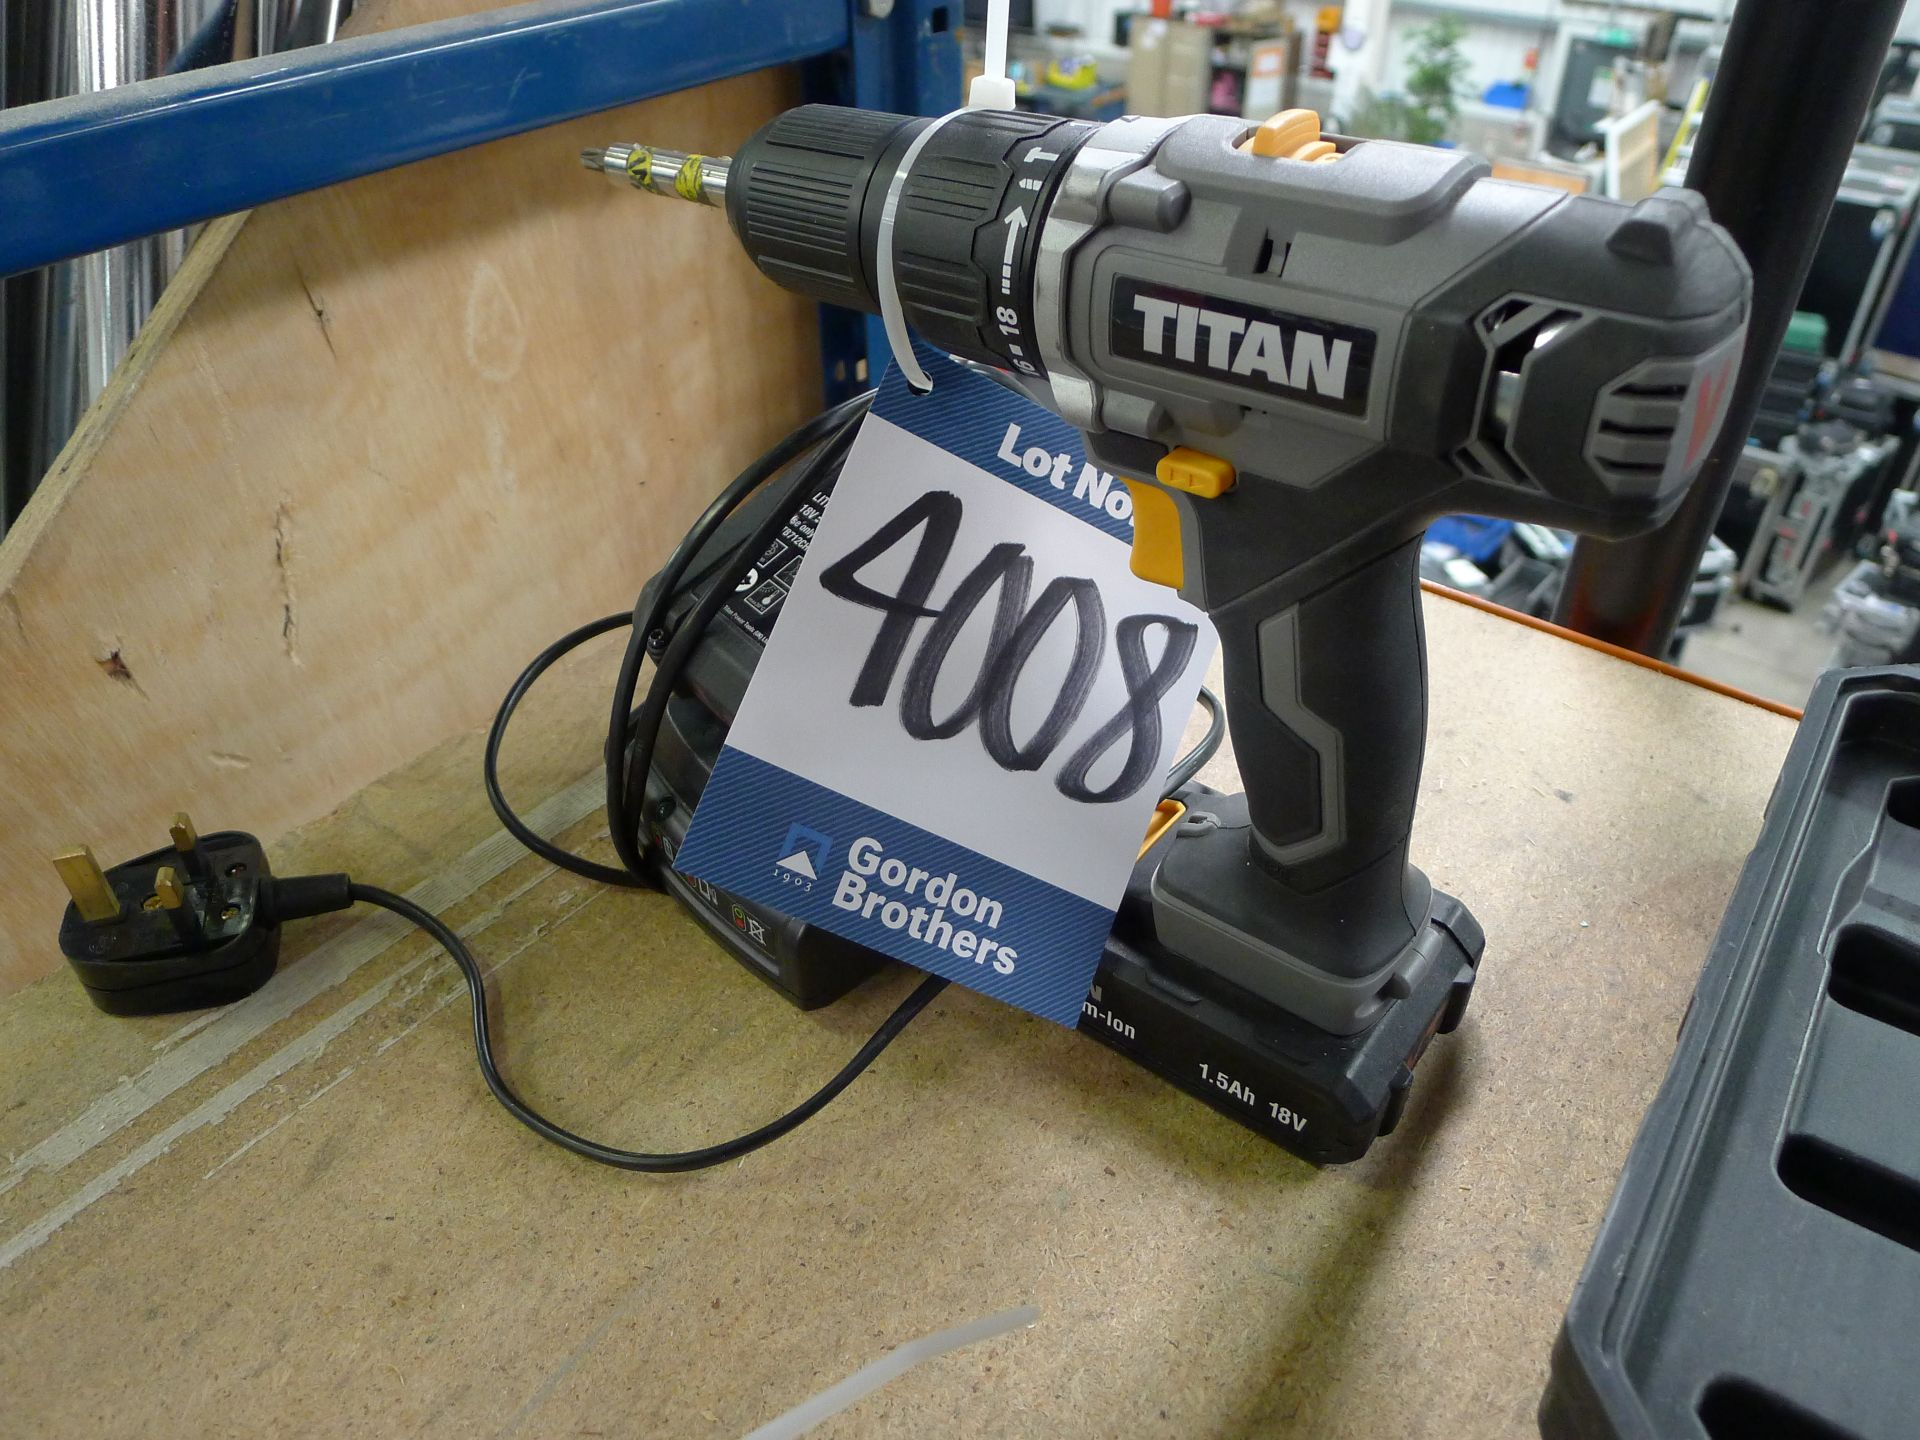 Lot 4008 - Titan 18 V Drill Driver with Charger and Spare Bat